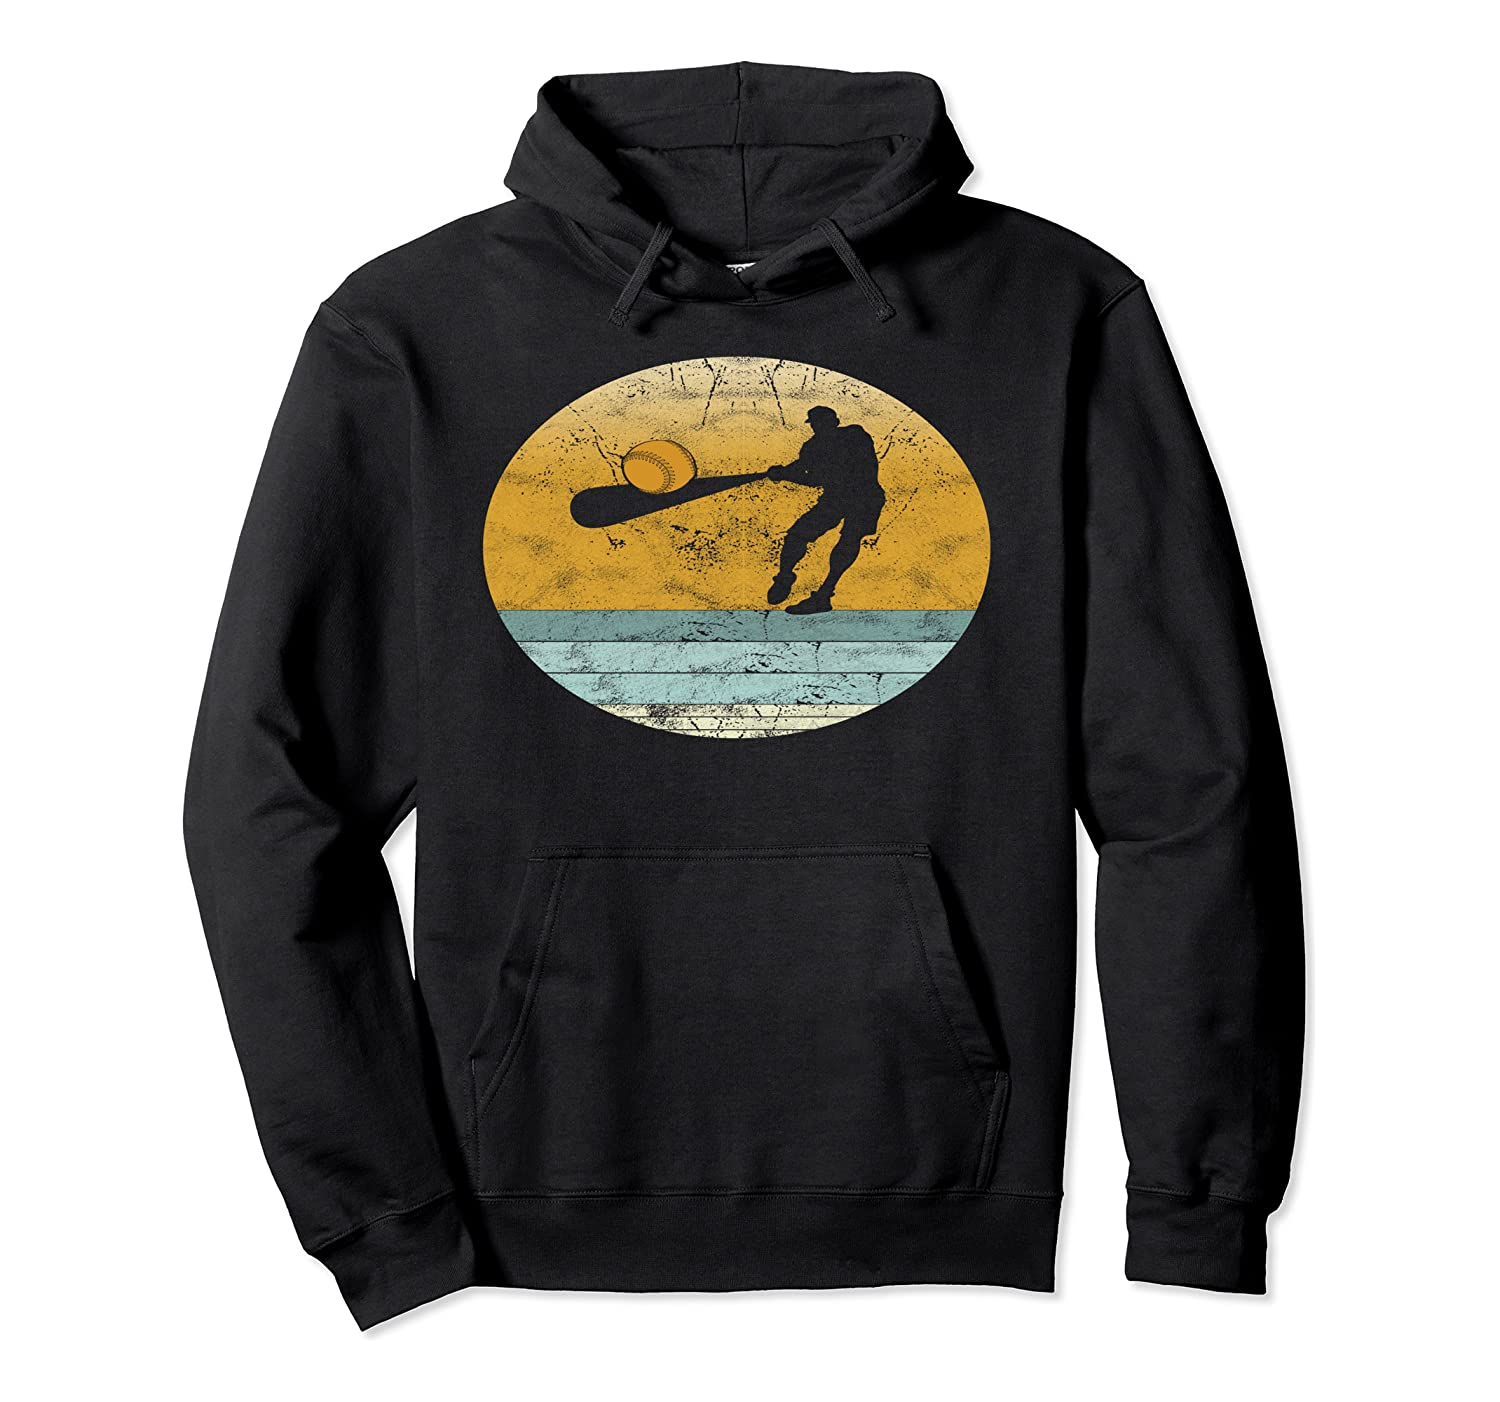 Retro Softball Vintage Style Sport Gift for Men Pullover Hoodie